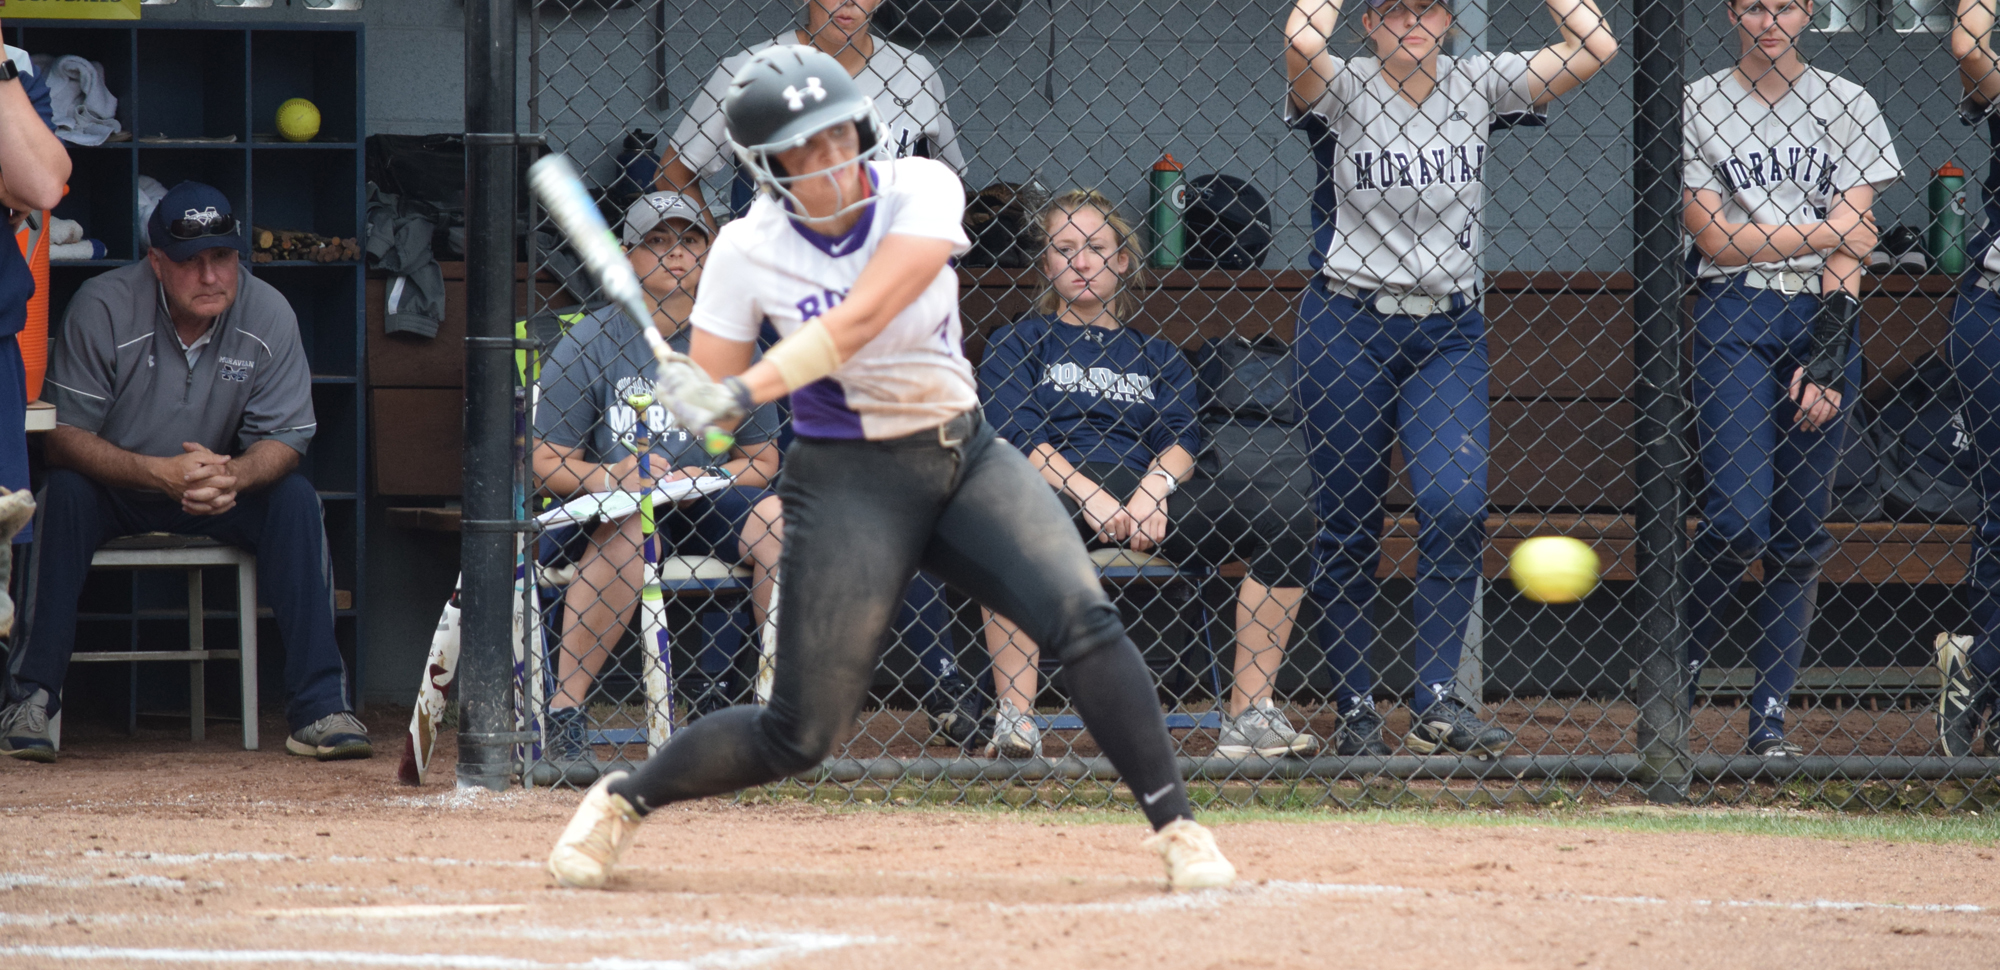 Junior Casey DeSarno went 2-for-3 with two runs scored as Scranton won Thursday's opener over the Coast Guard Academy.